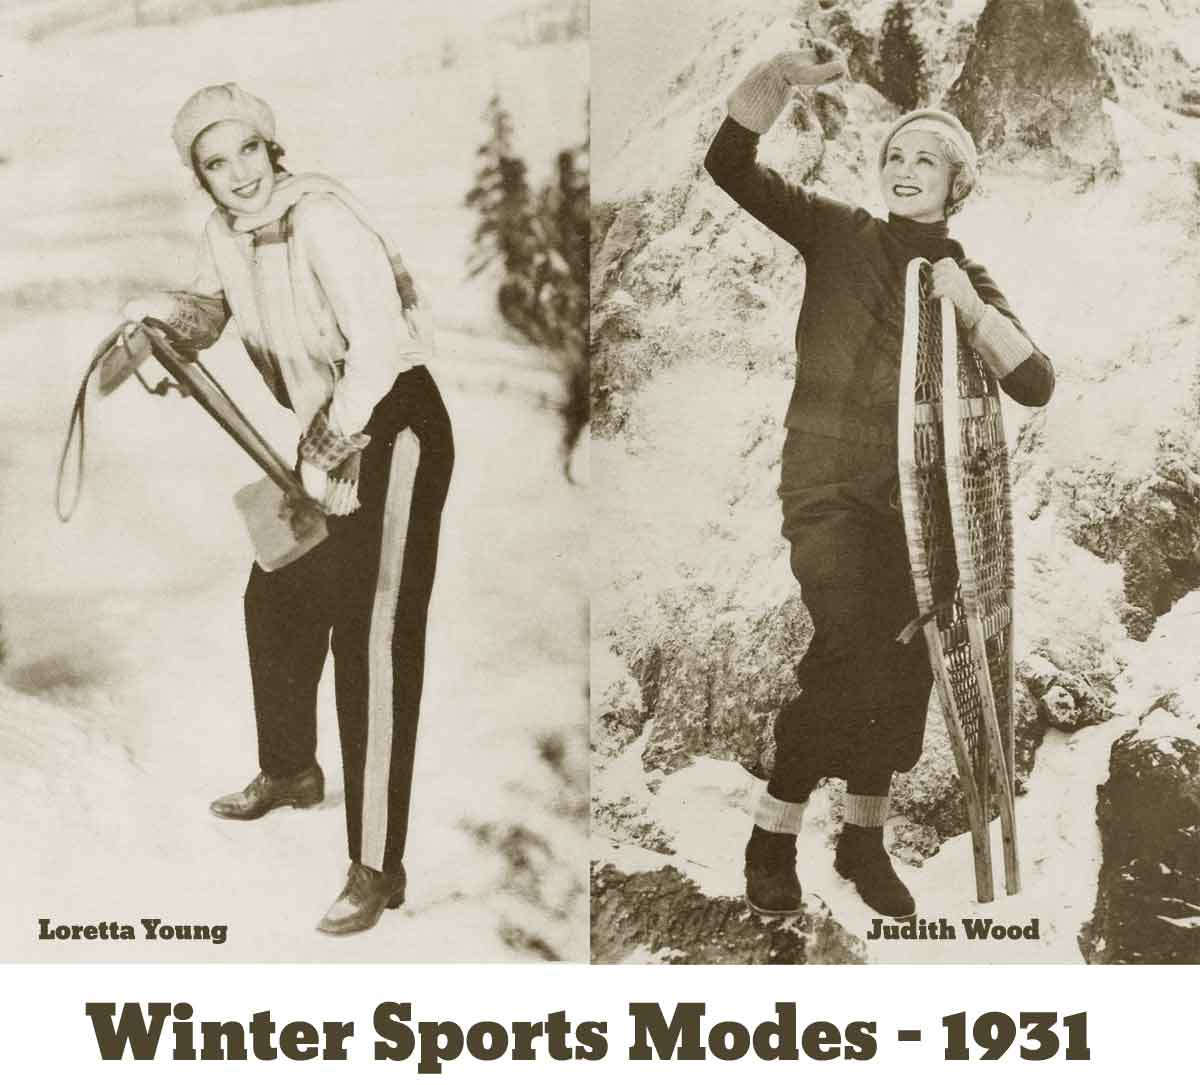 1930s Fashion - The Debs Winter Wardrobe for 1931 - Sports